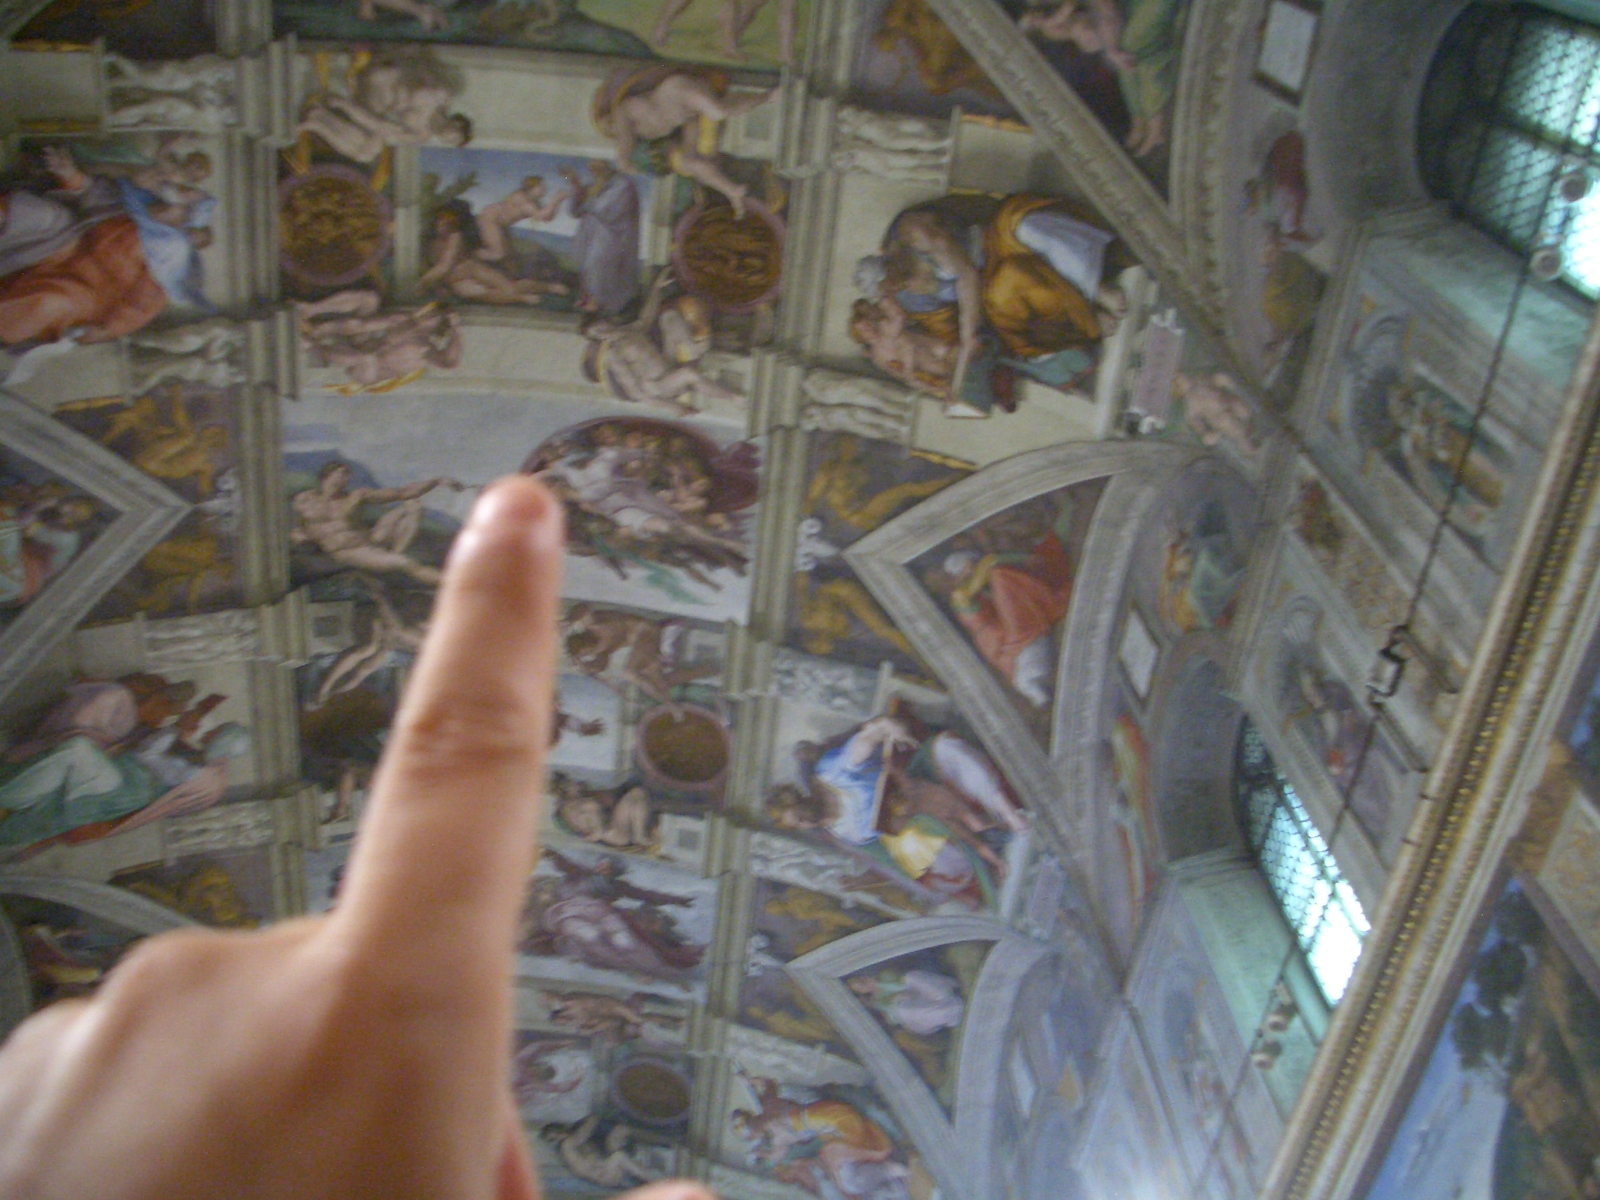 Vaticano - Musei Vaticani - Cappella Sistina - my poor attempt to create Adam